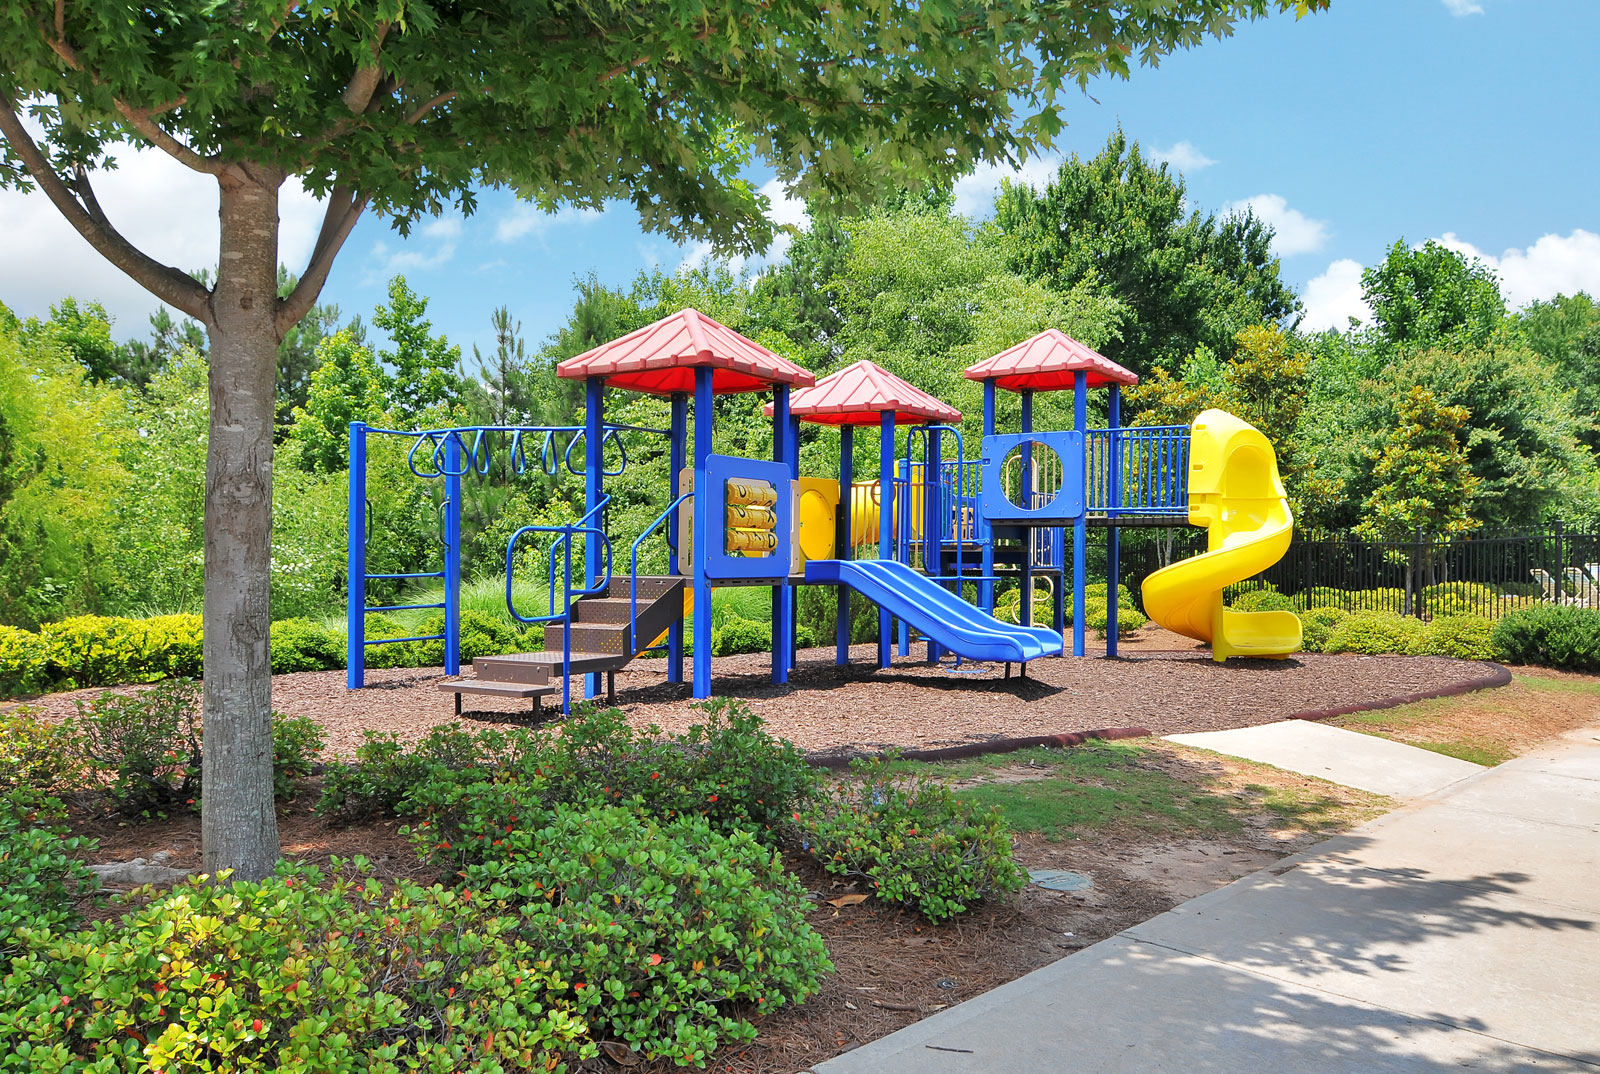 Apartments in Buford with a playground